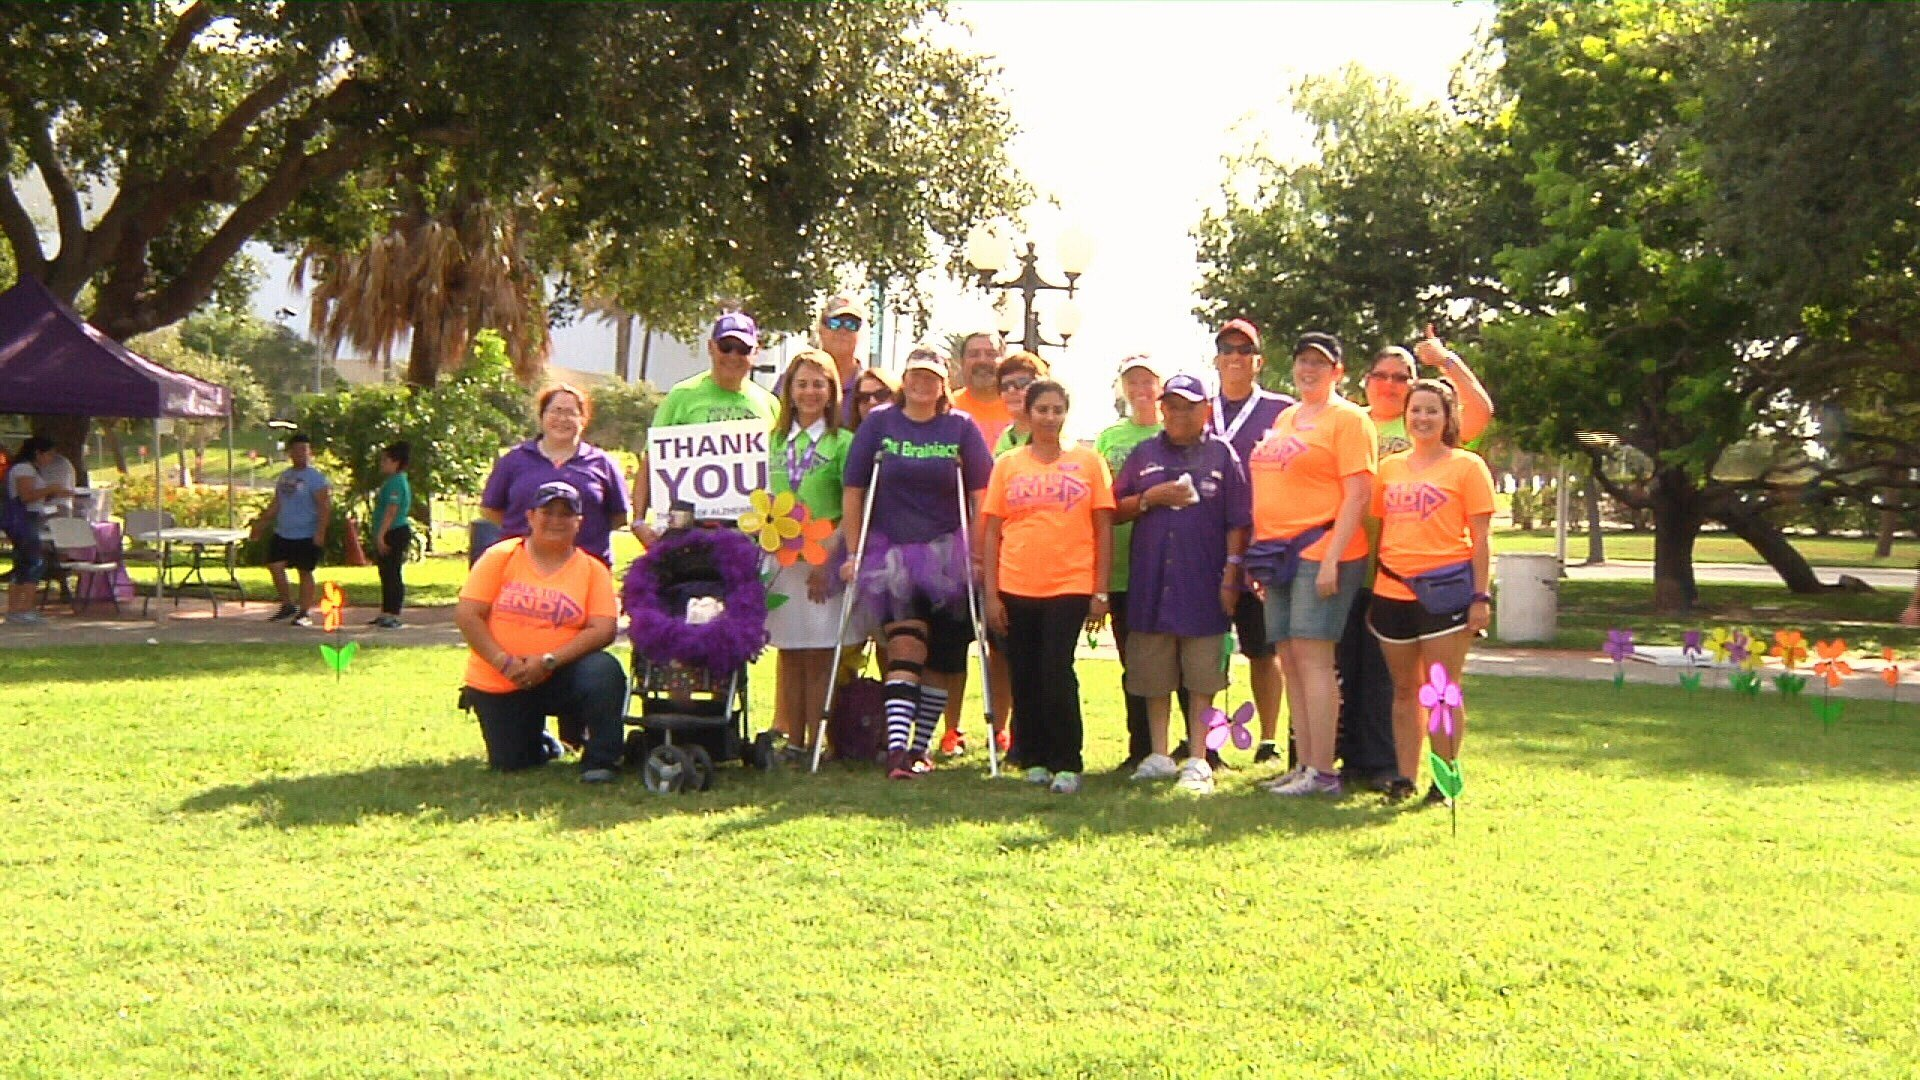 Alzheimer's Association plans walk around stadium Saturday to raise awareness